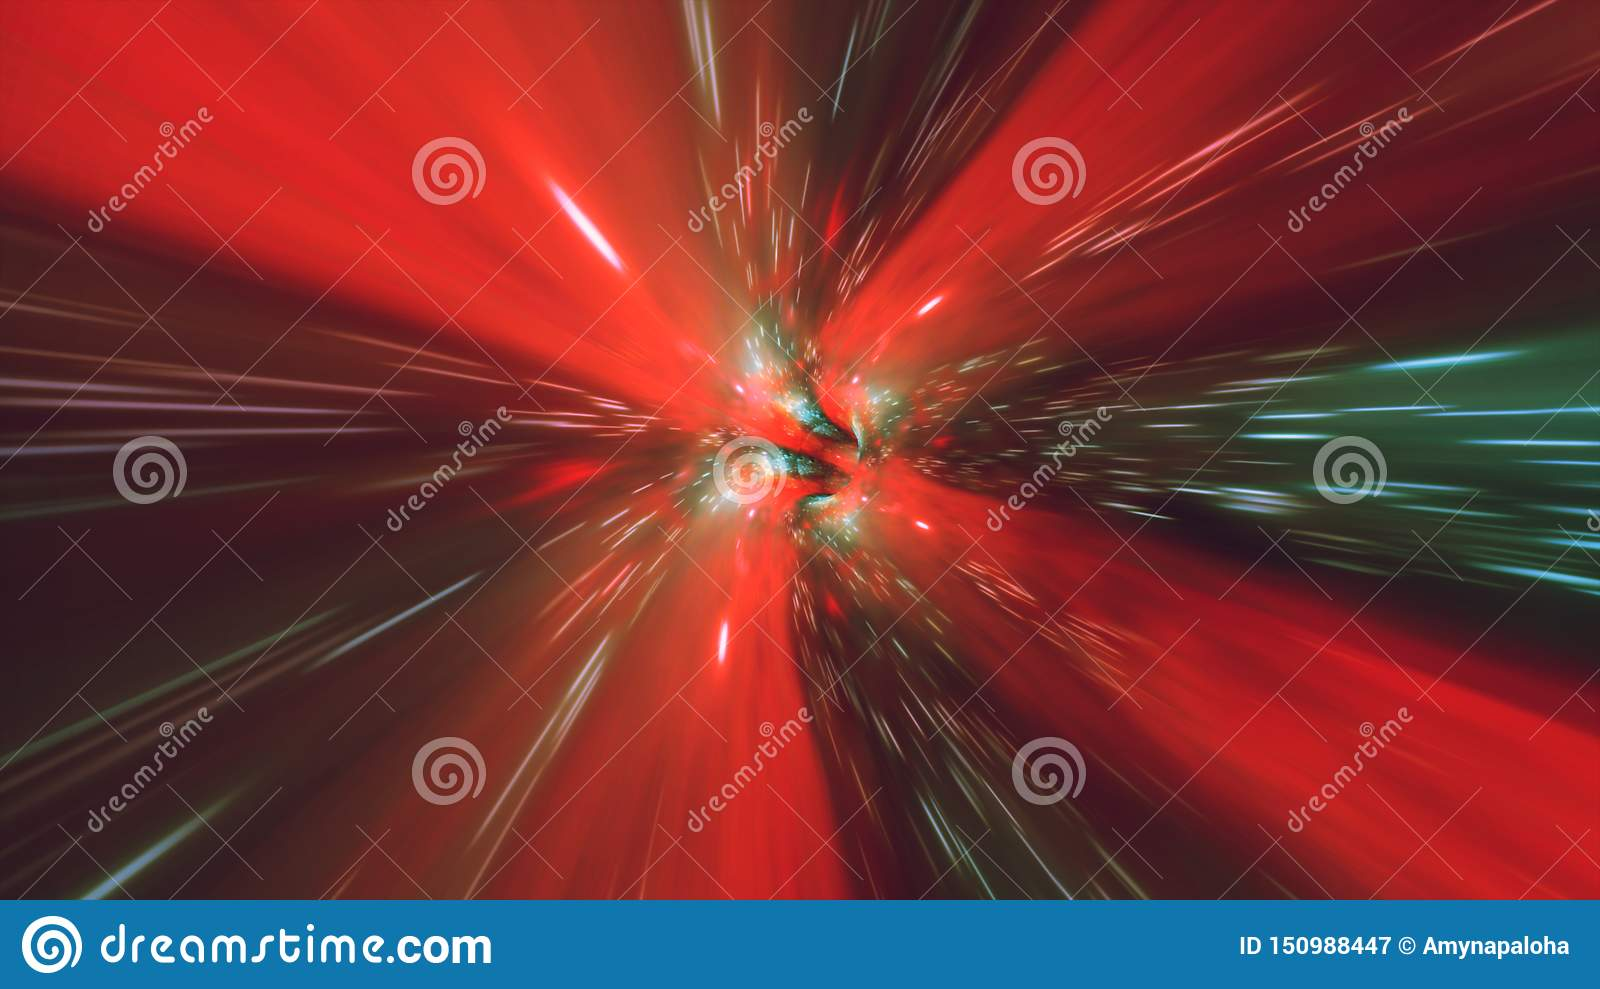 Vortex hyperspace tunnel wormhole time and space, warp science fiction Background 3D Animation